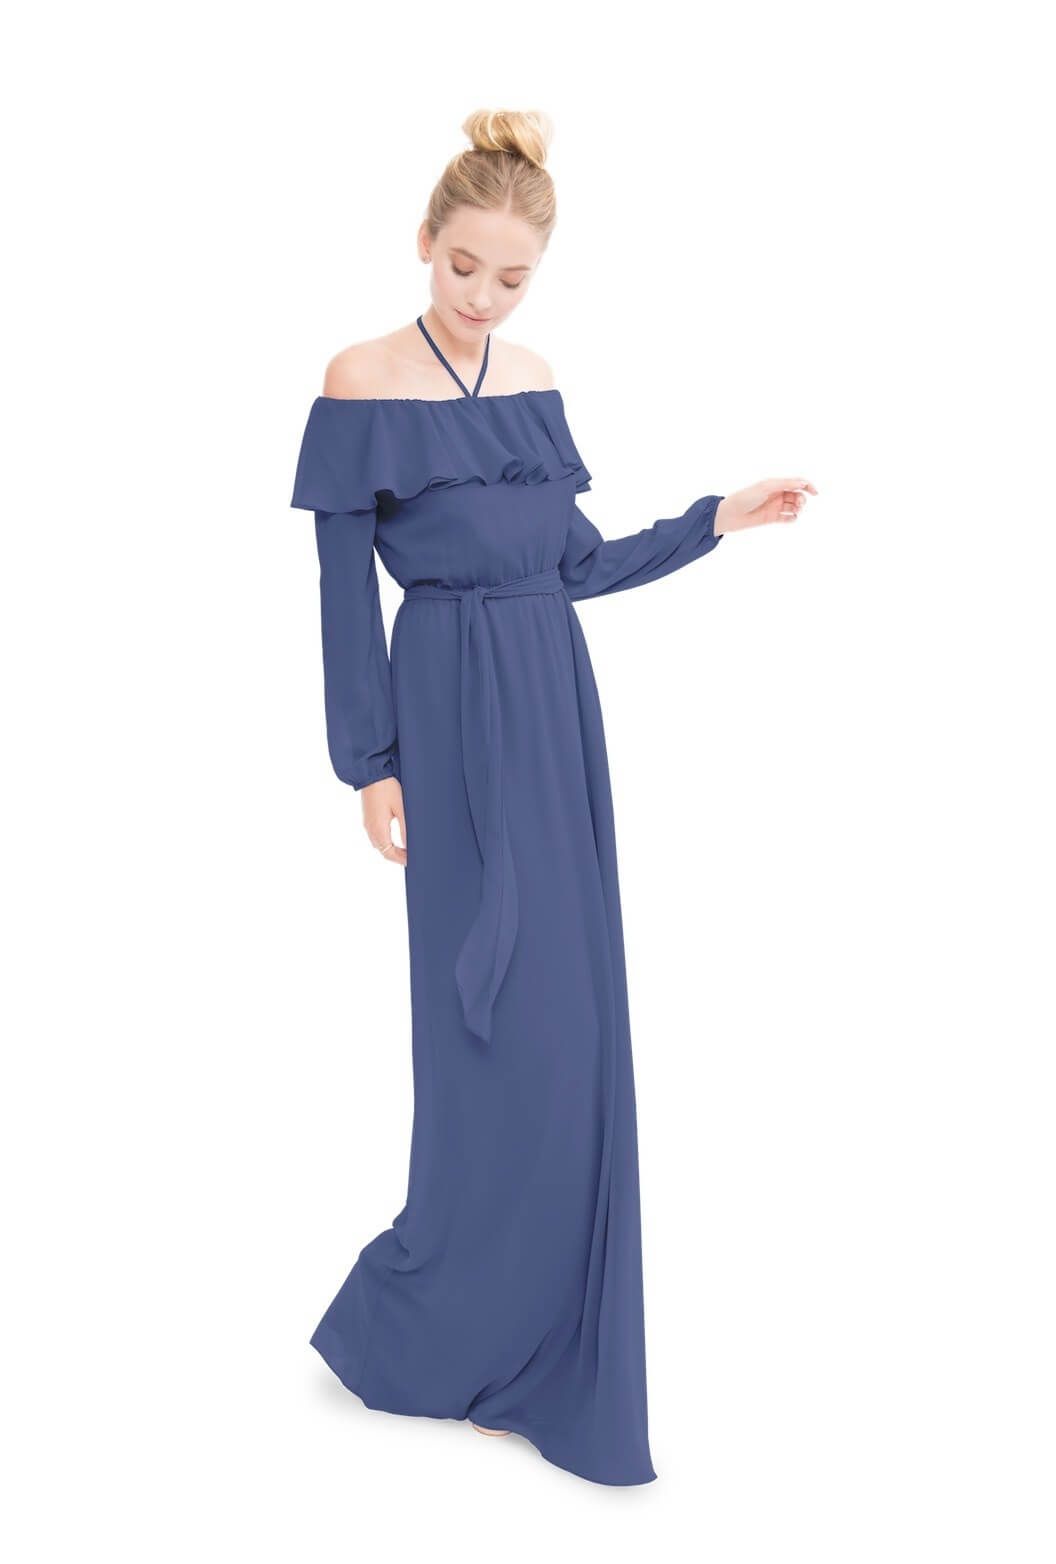 This Joanna August gown combines all of the sleeve trends to establish a bohemian, easy-going look. Image: Bella Bridesmaids